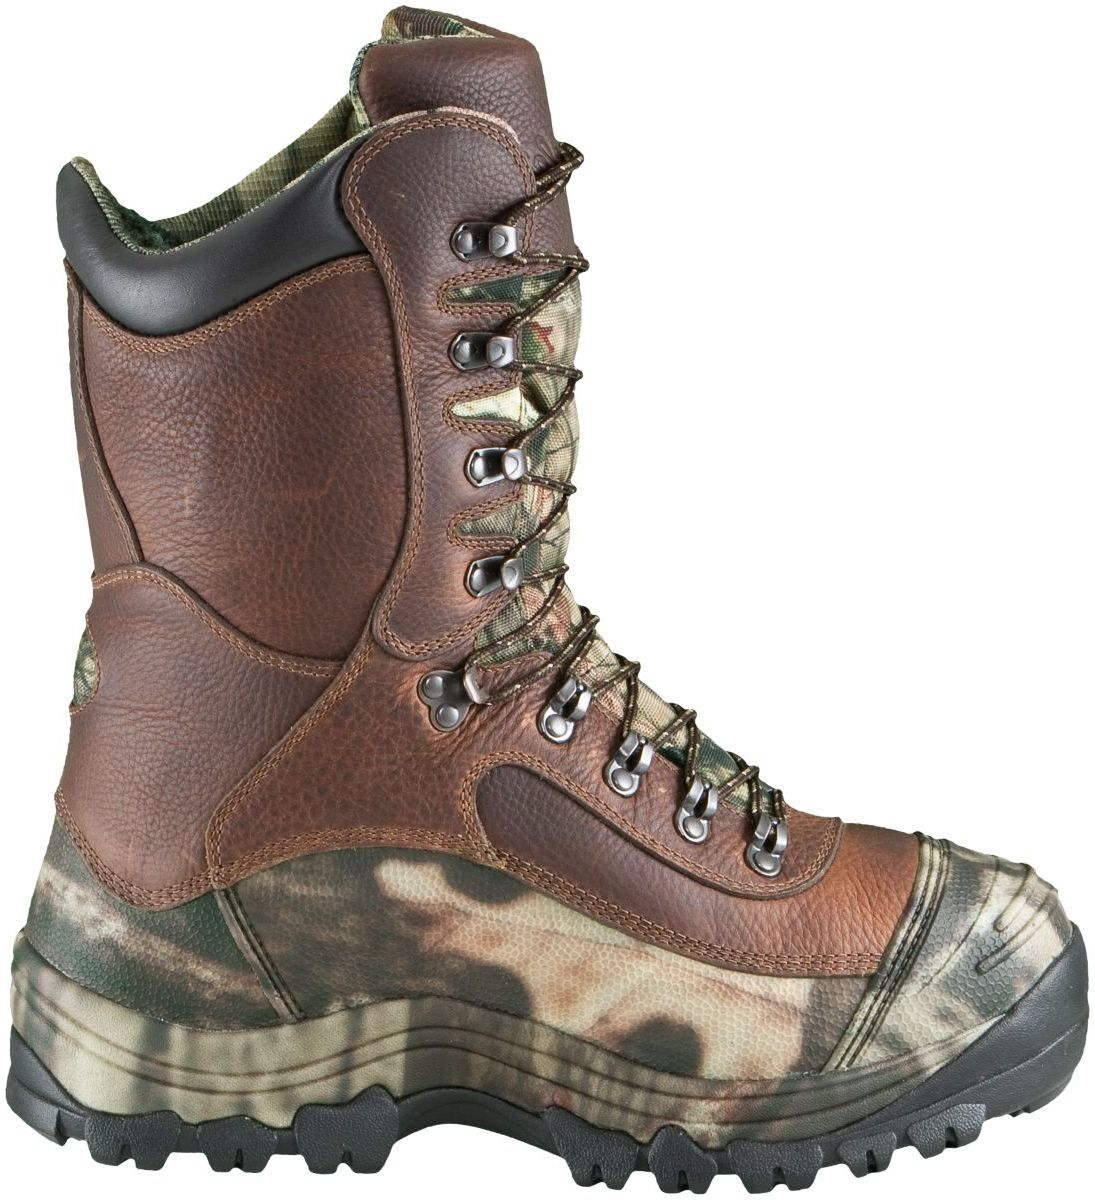 Cabela's Men's Predator™ Extreme Pac Boots – Brown/Mossy Oak® Break-Up Infinity®